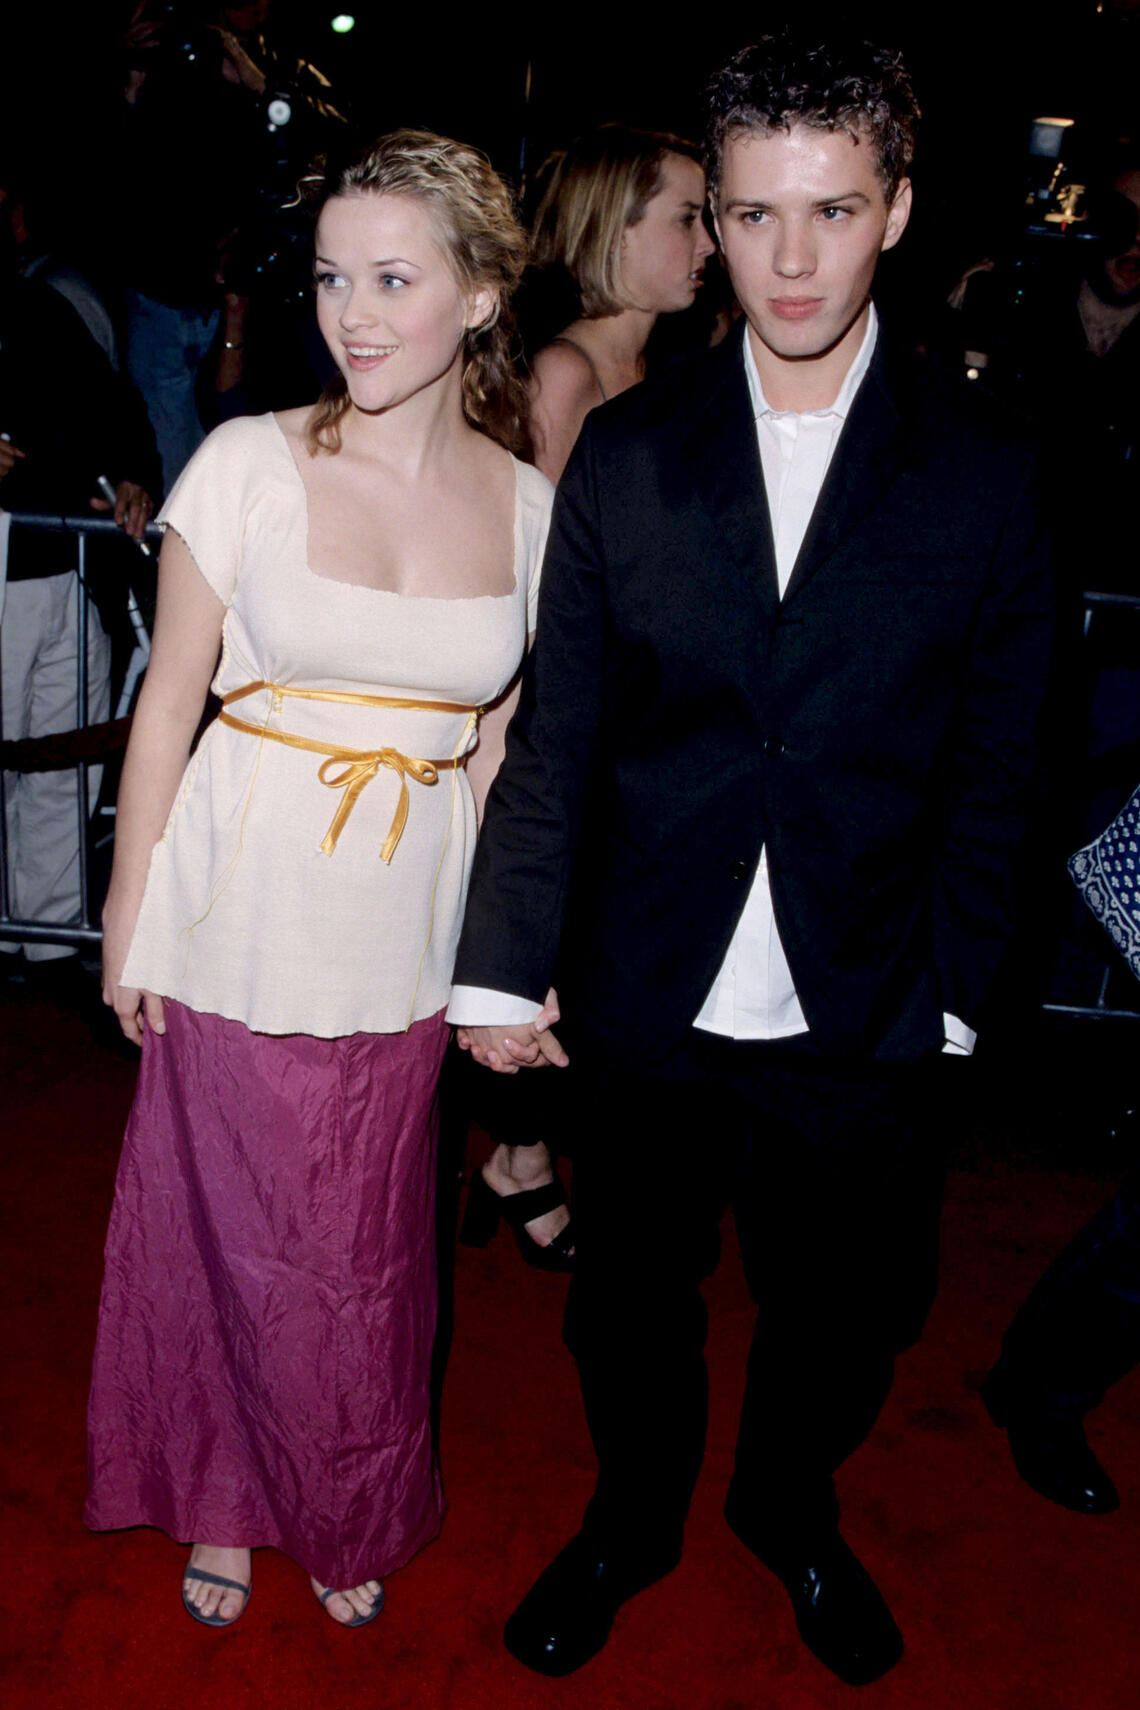 Ryan Phillippe and Reese Witherspoon during Cruel Intentions Premiere at Mann Village Theatre in Westwood, California, United States. (Photo by S. Granitz/WireImage)